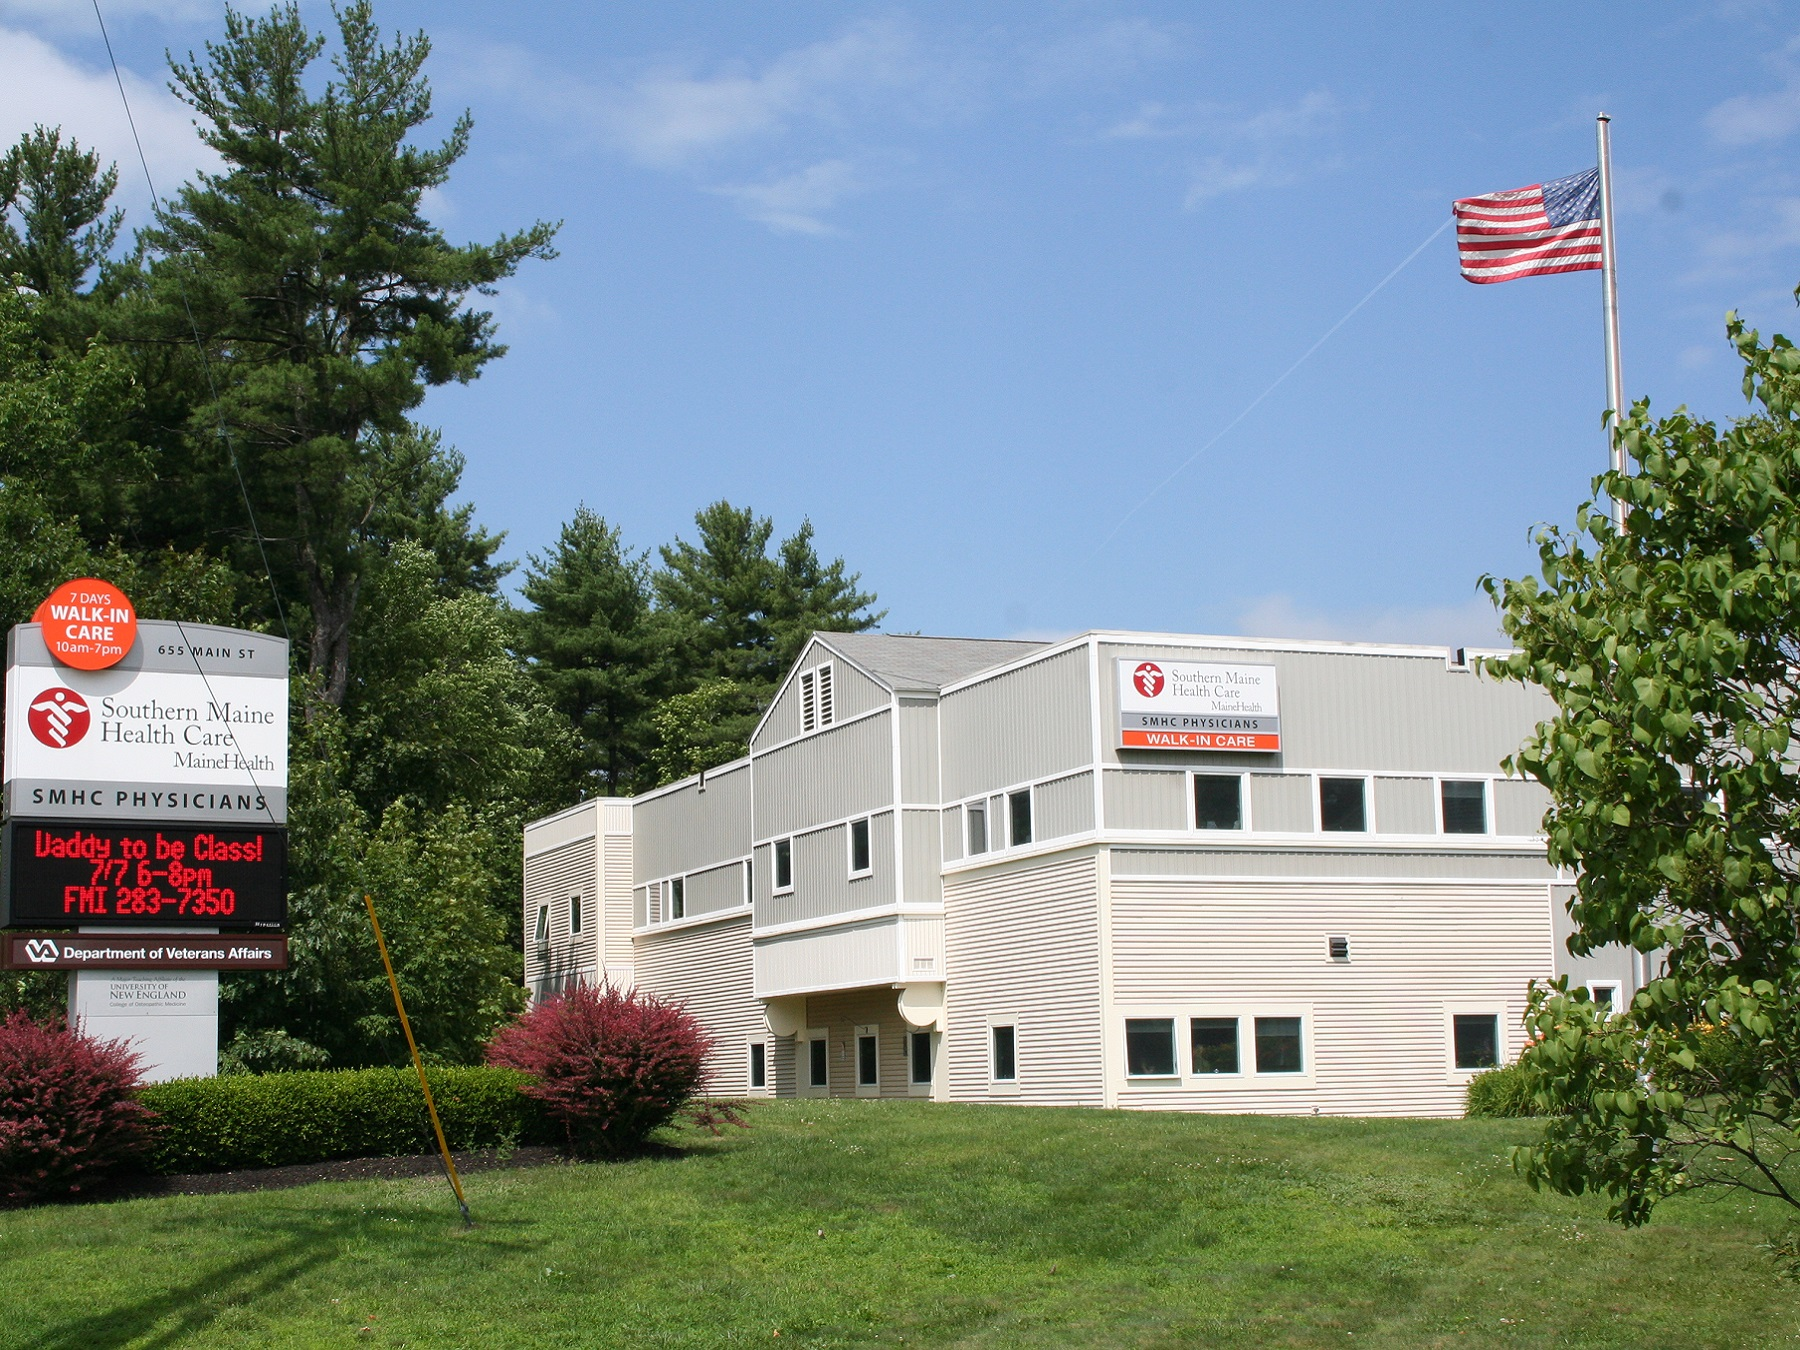 Southern Maine Health Care Is Located At 655 Main St., Saco, ME